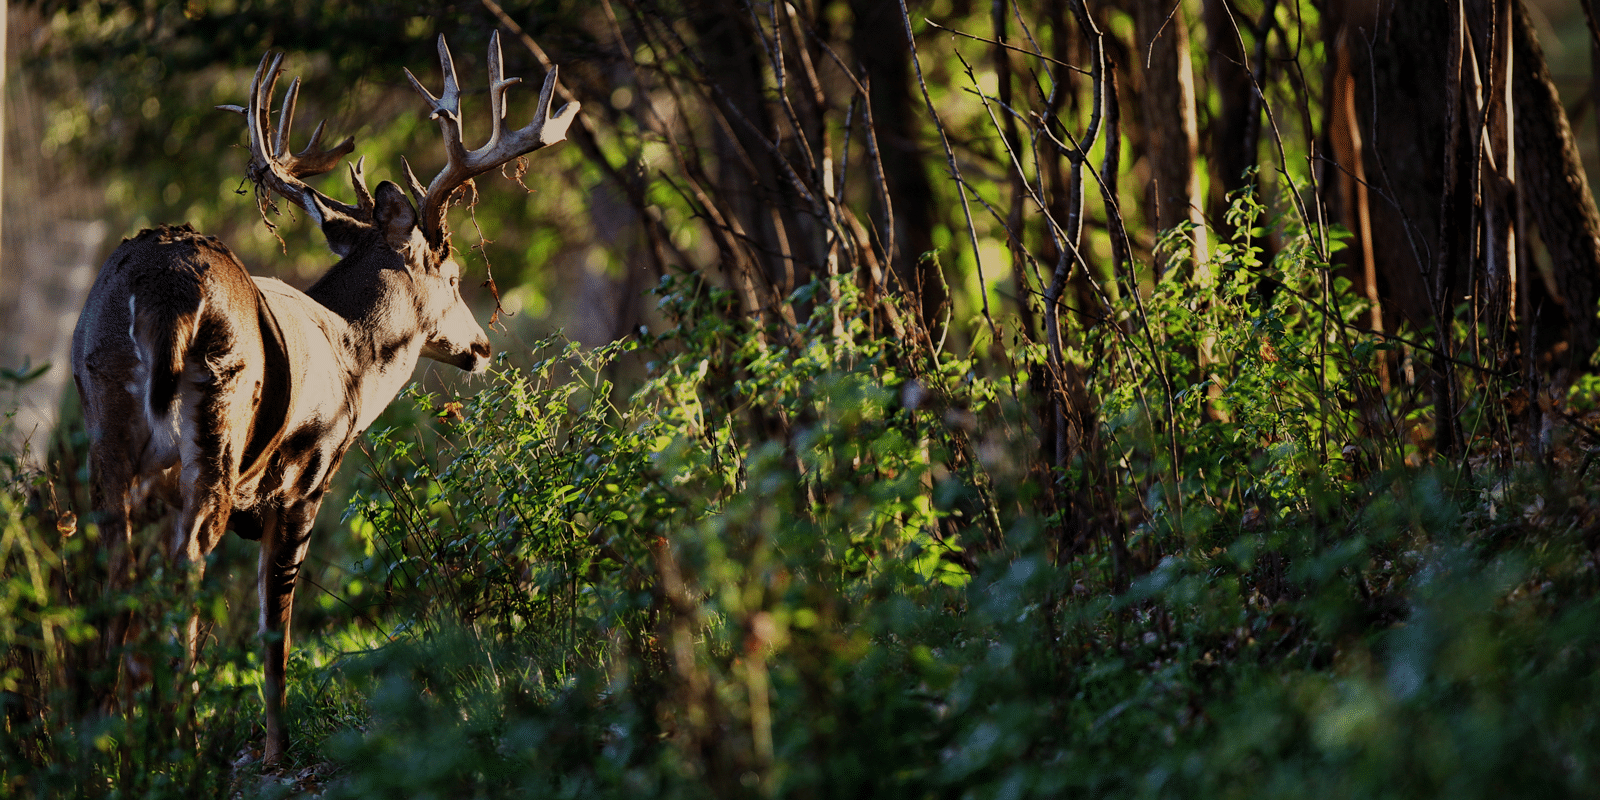 A buck at the edge of the woods looking towards the sun through trees